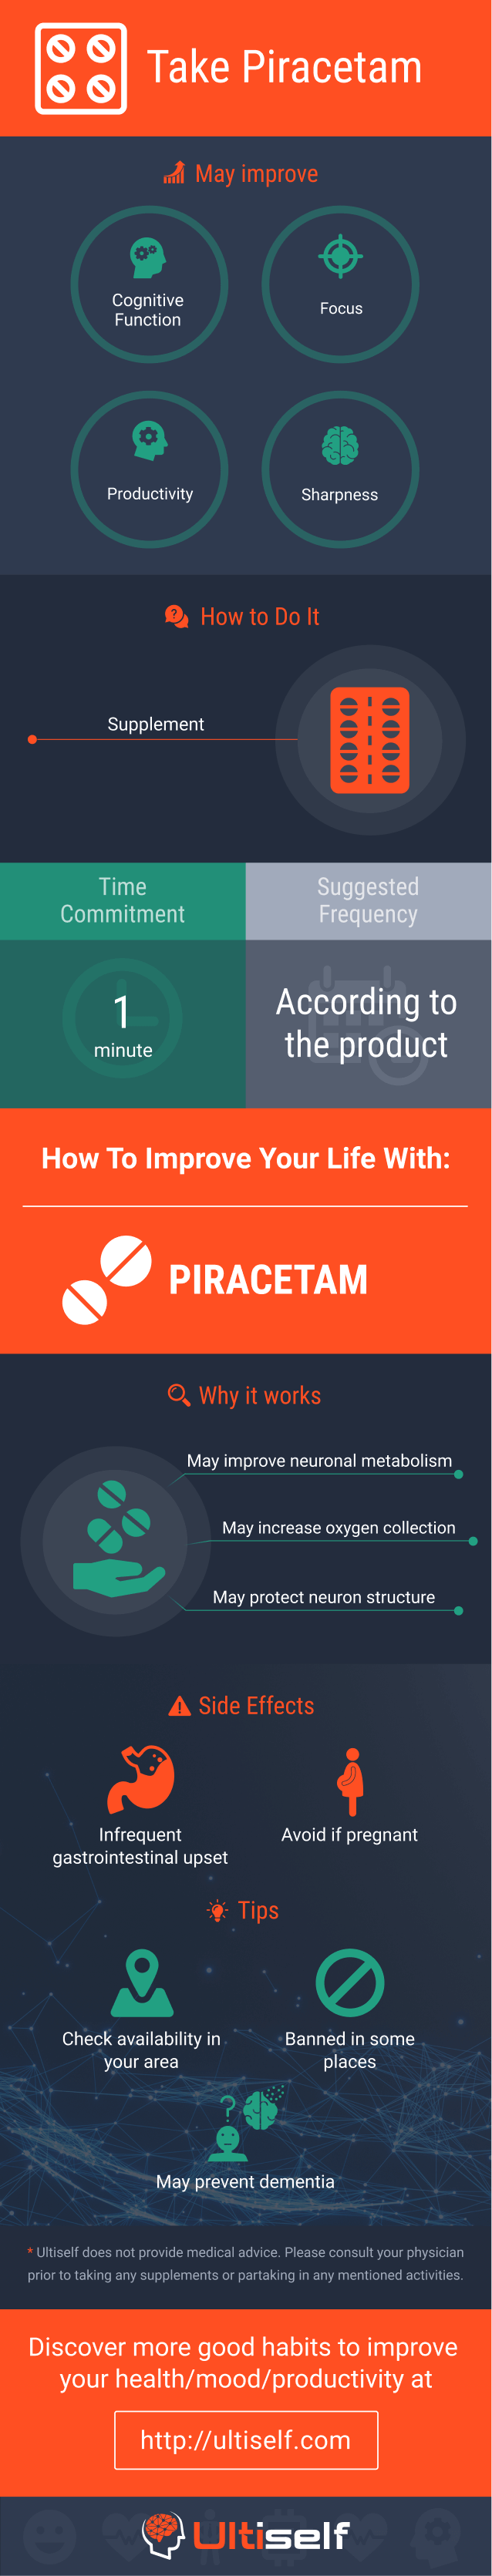 Take Piracetam infographic